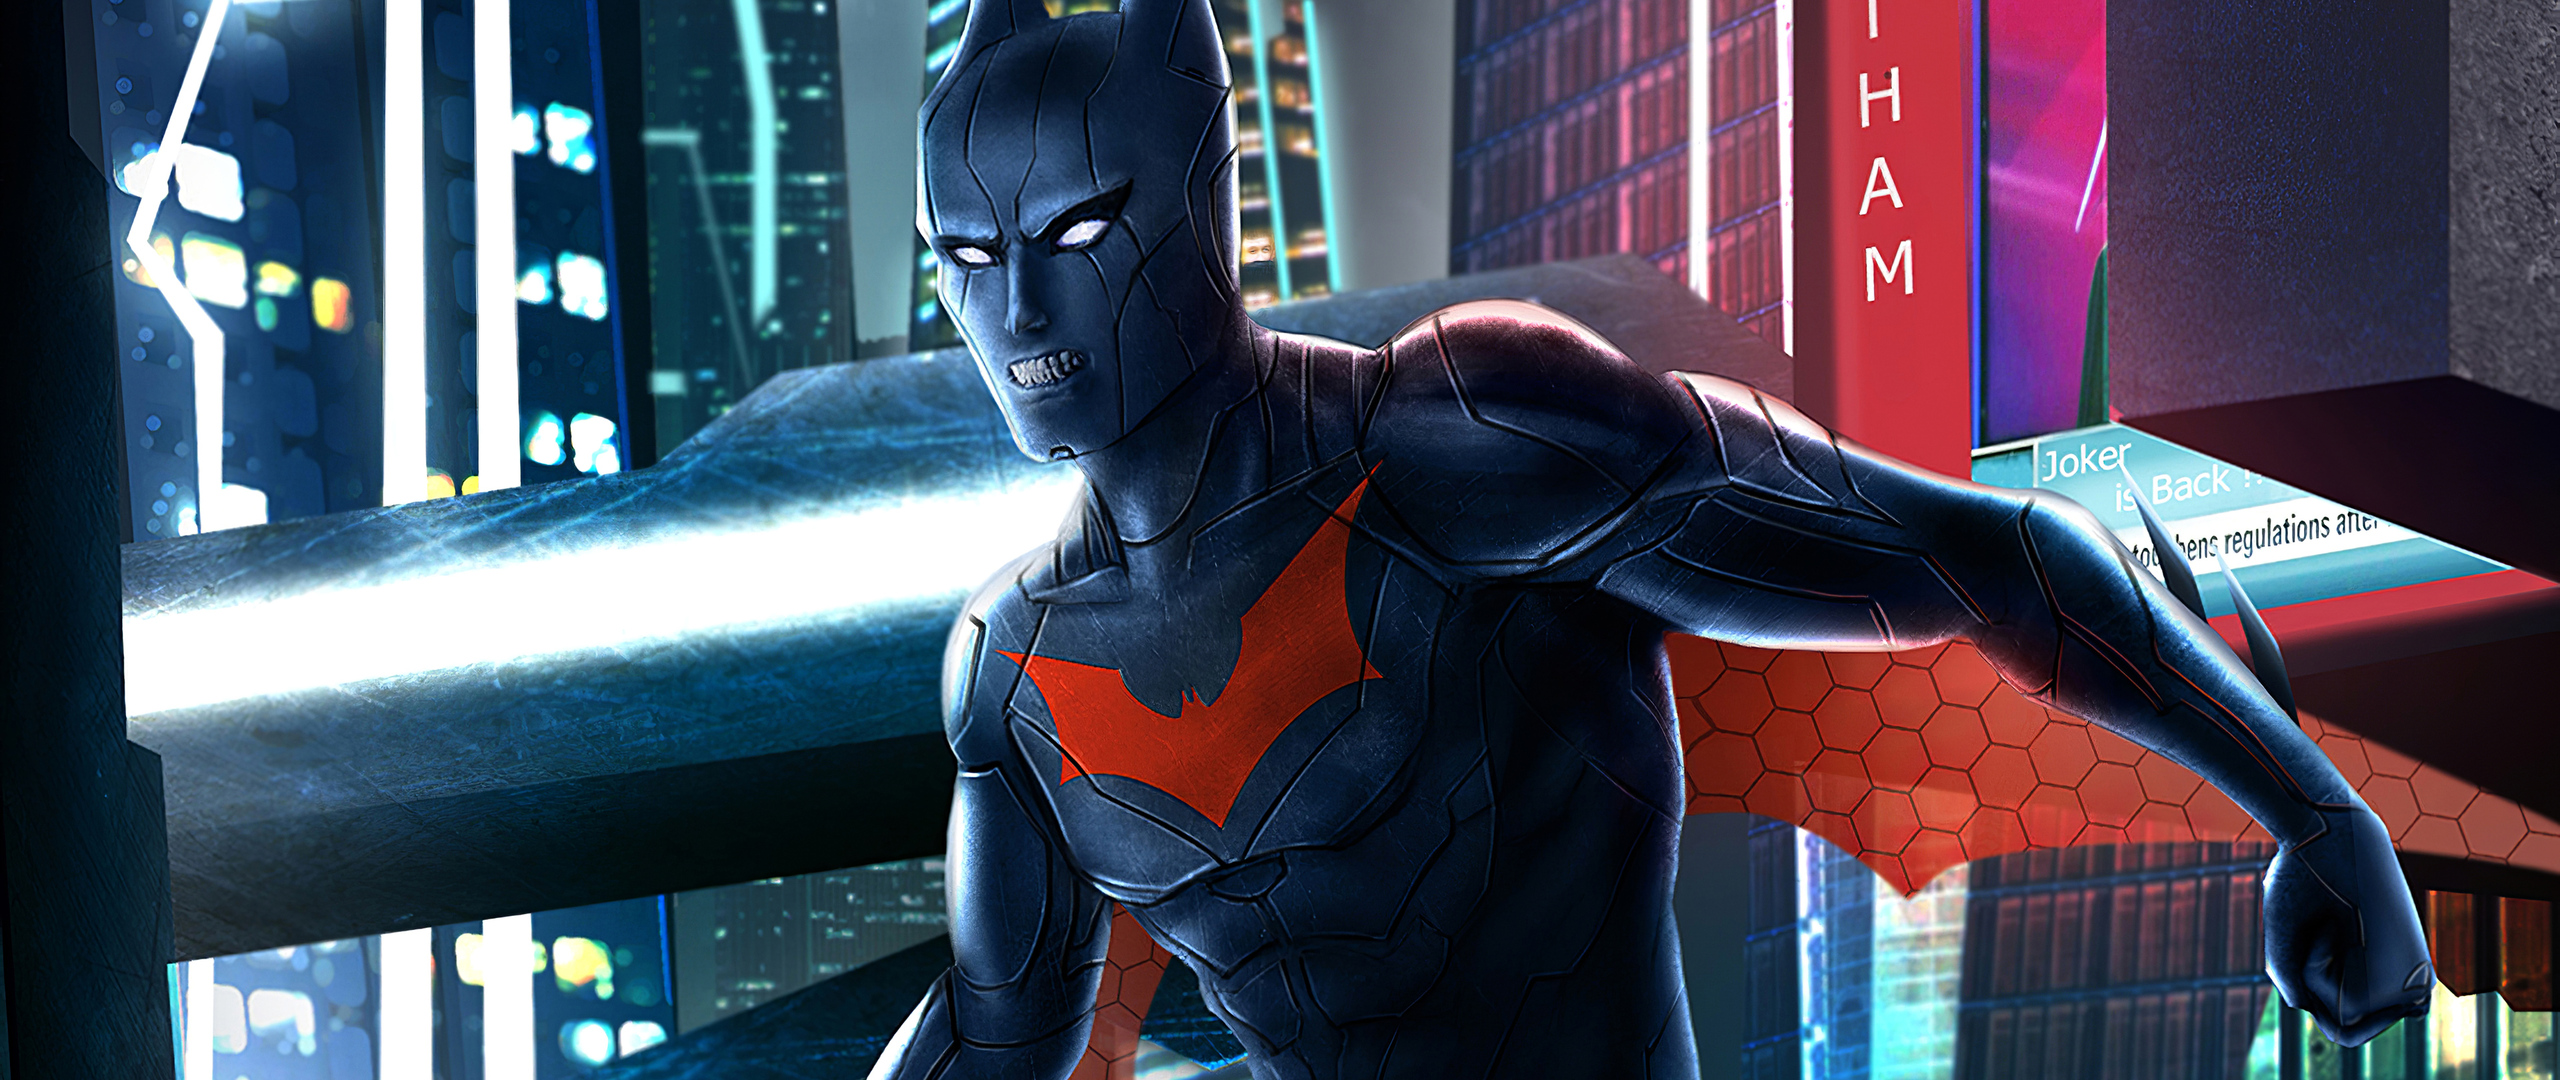 batman-beyond-artwork-4k-2020-dp.jpg